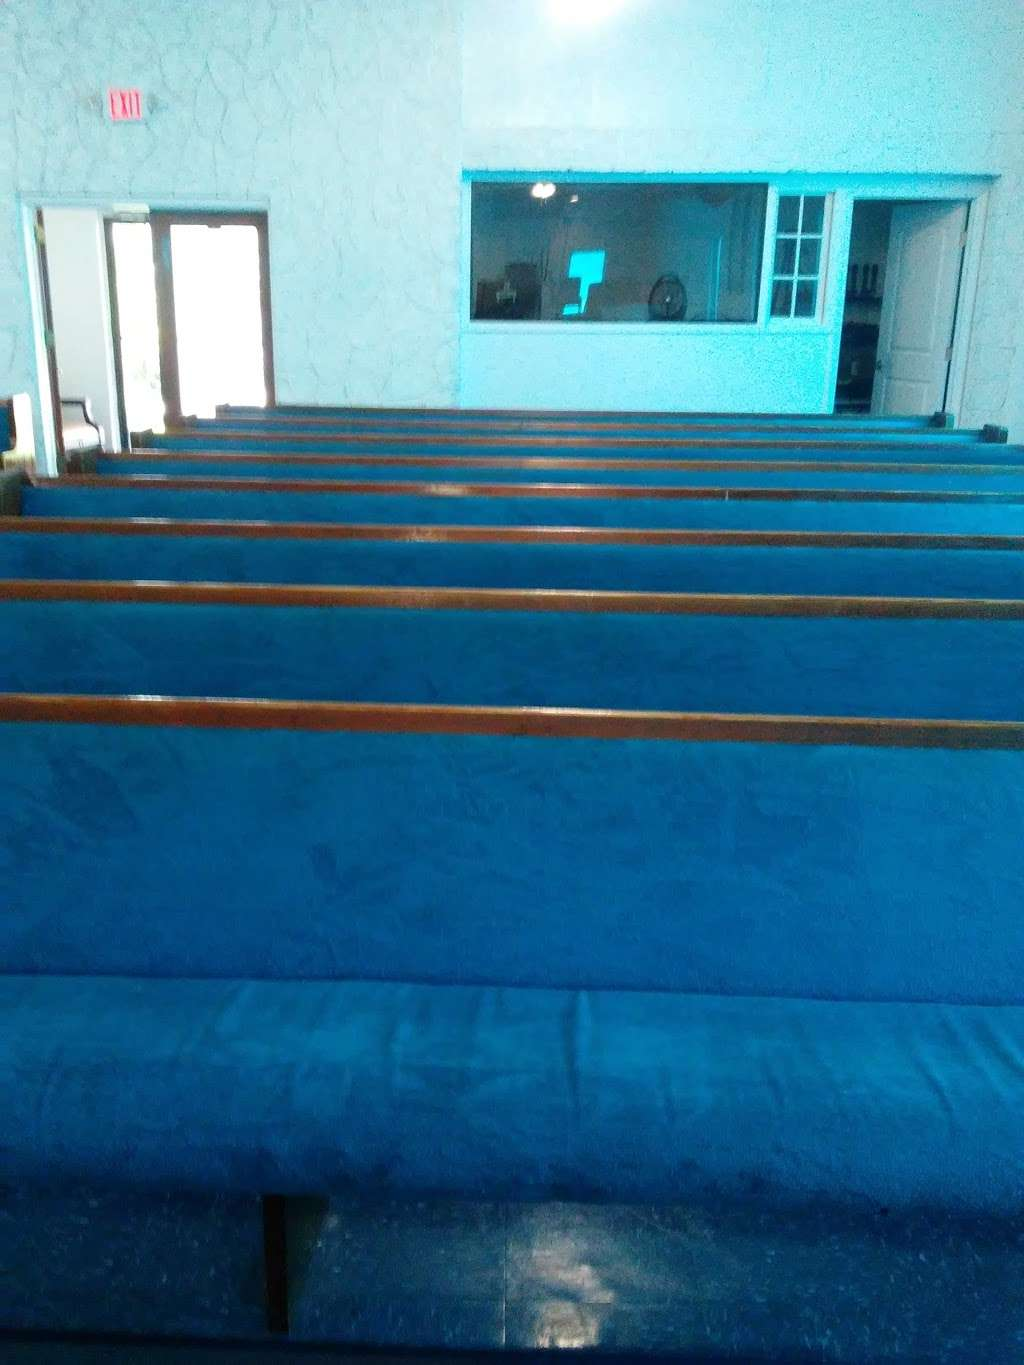 Mount Calvary Baptist Church - church  | Photo 2 of 2 | Address: 399 Canal St, Belle Glade, FL 33430, USA | Phone: (561) 996-8238